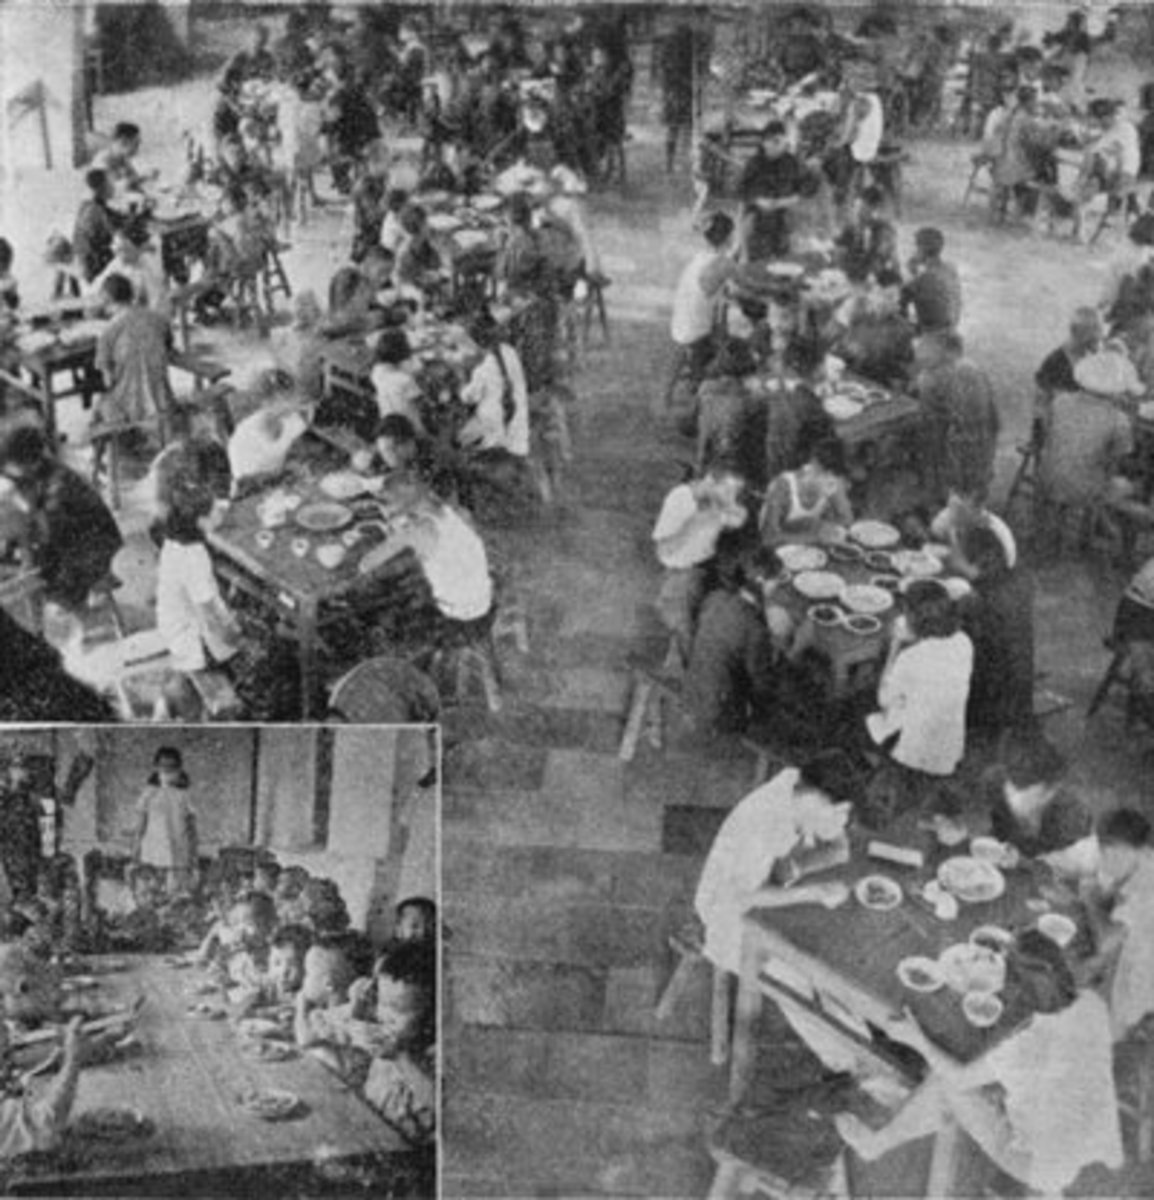 In the beginning, commune members were able to eat for free at the commune canteens. This changed when food production slowed to a halt.